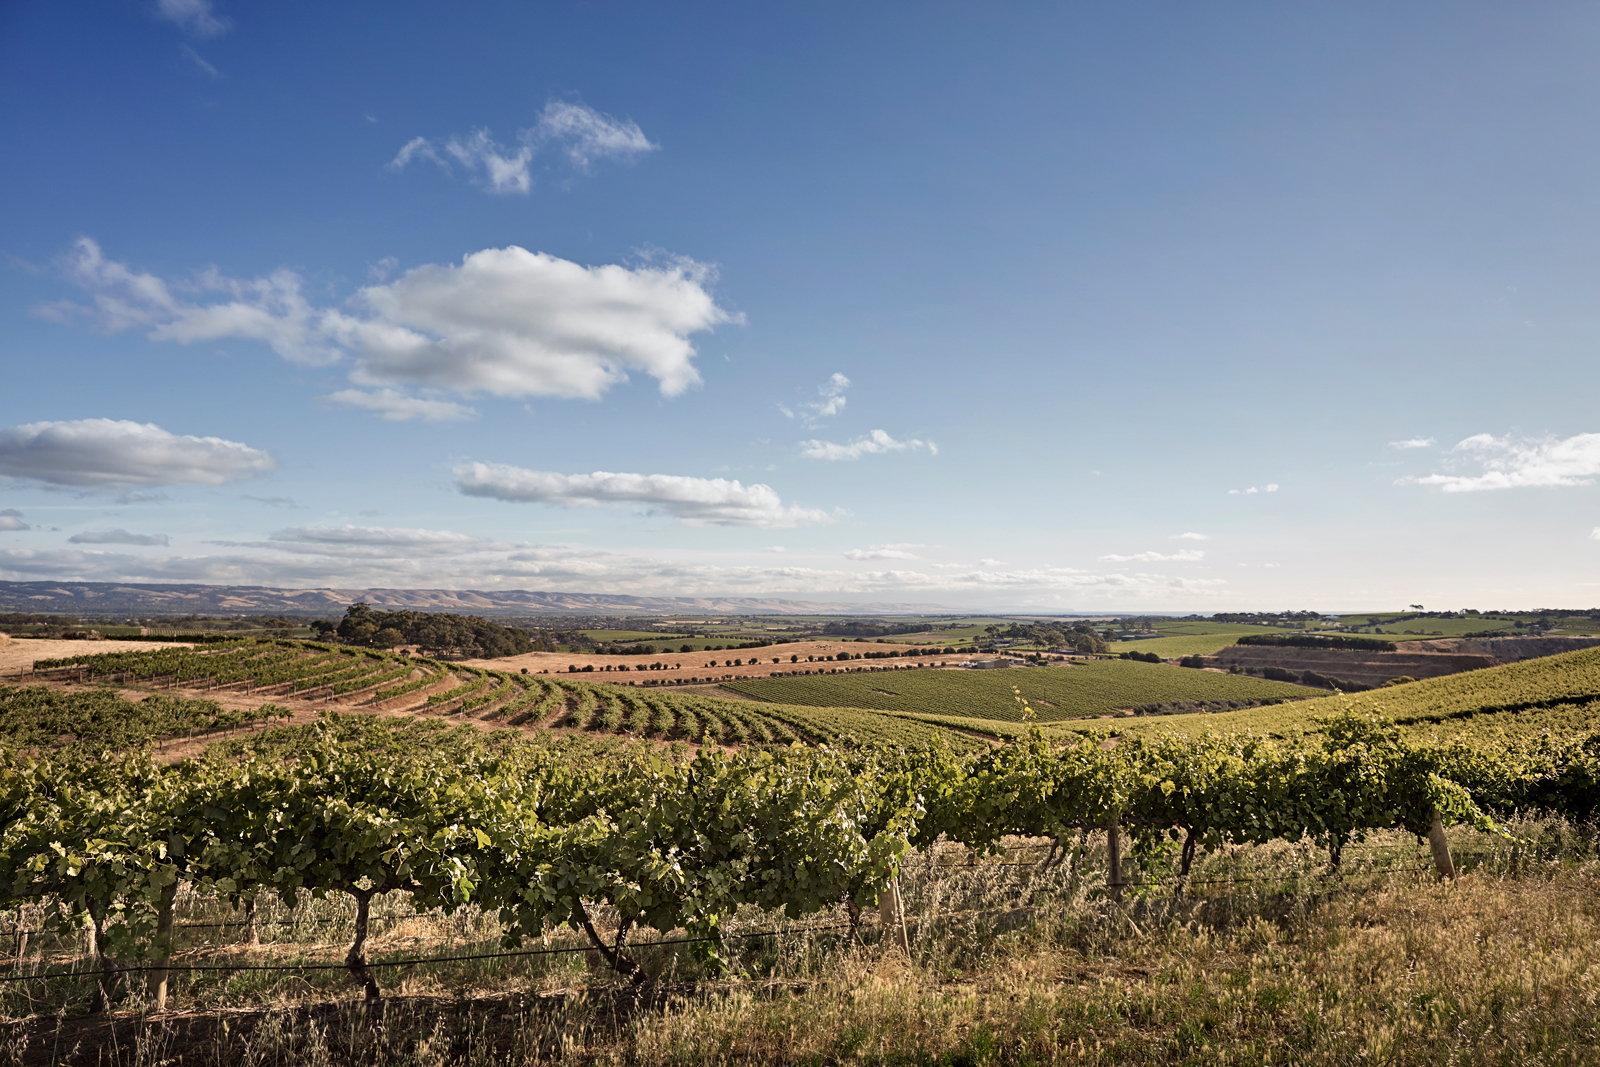 Grape vines surrounded by farmland and rolling hills.